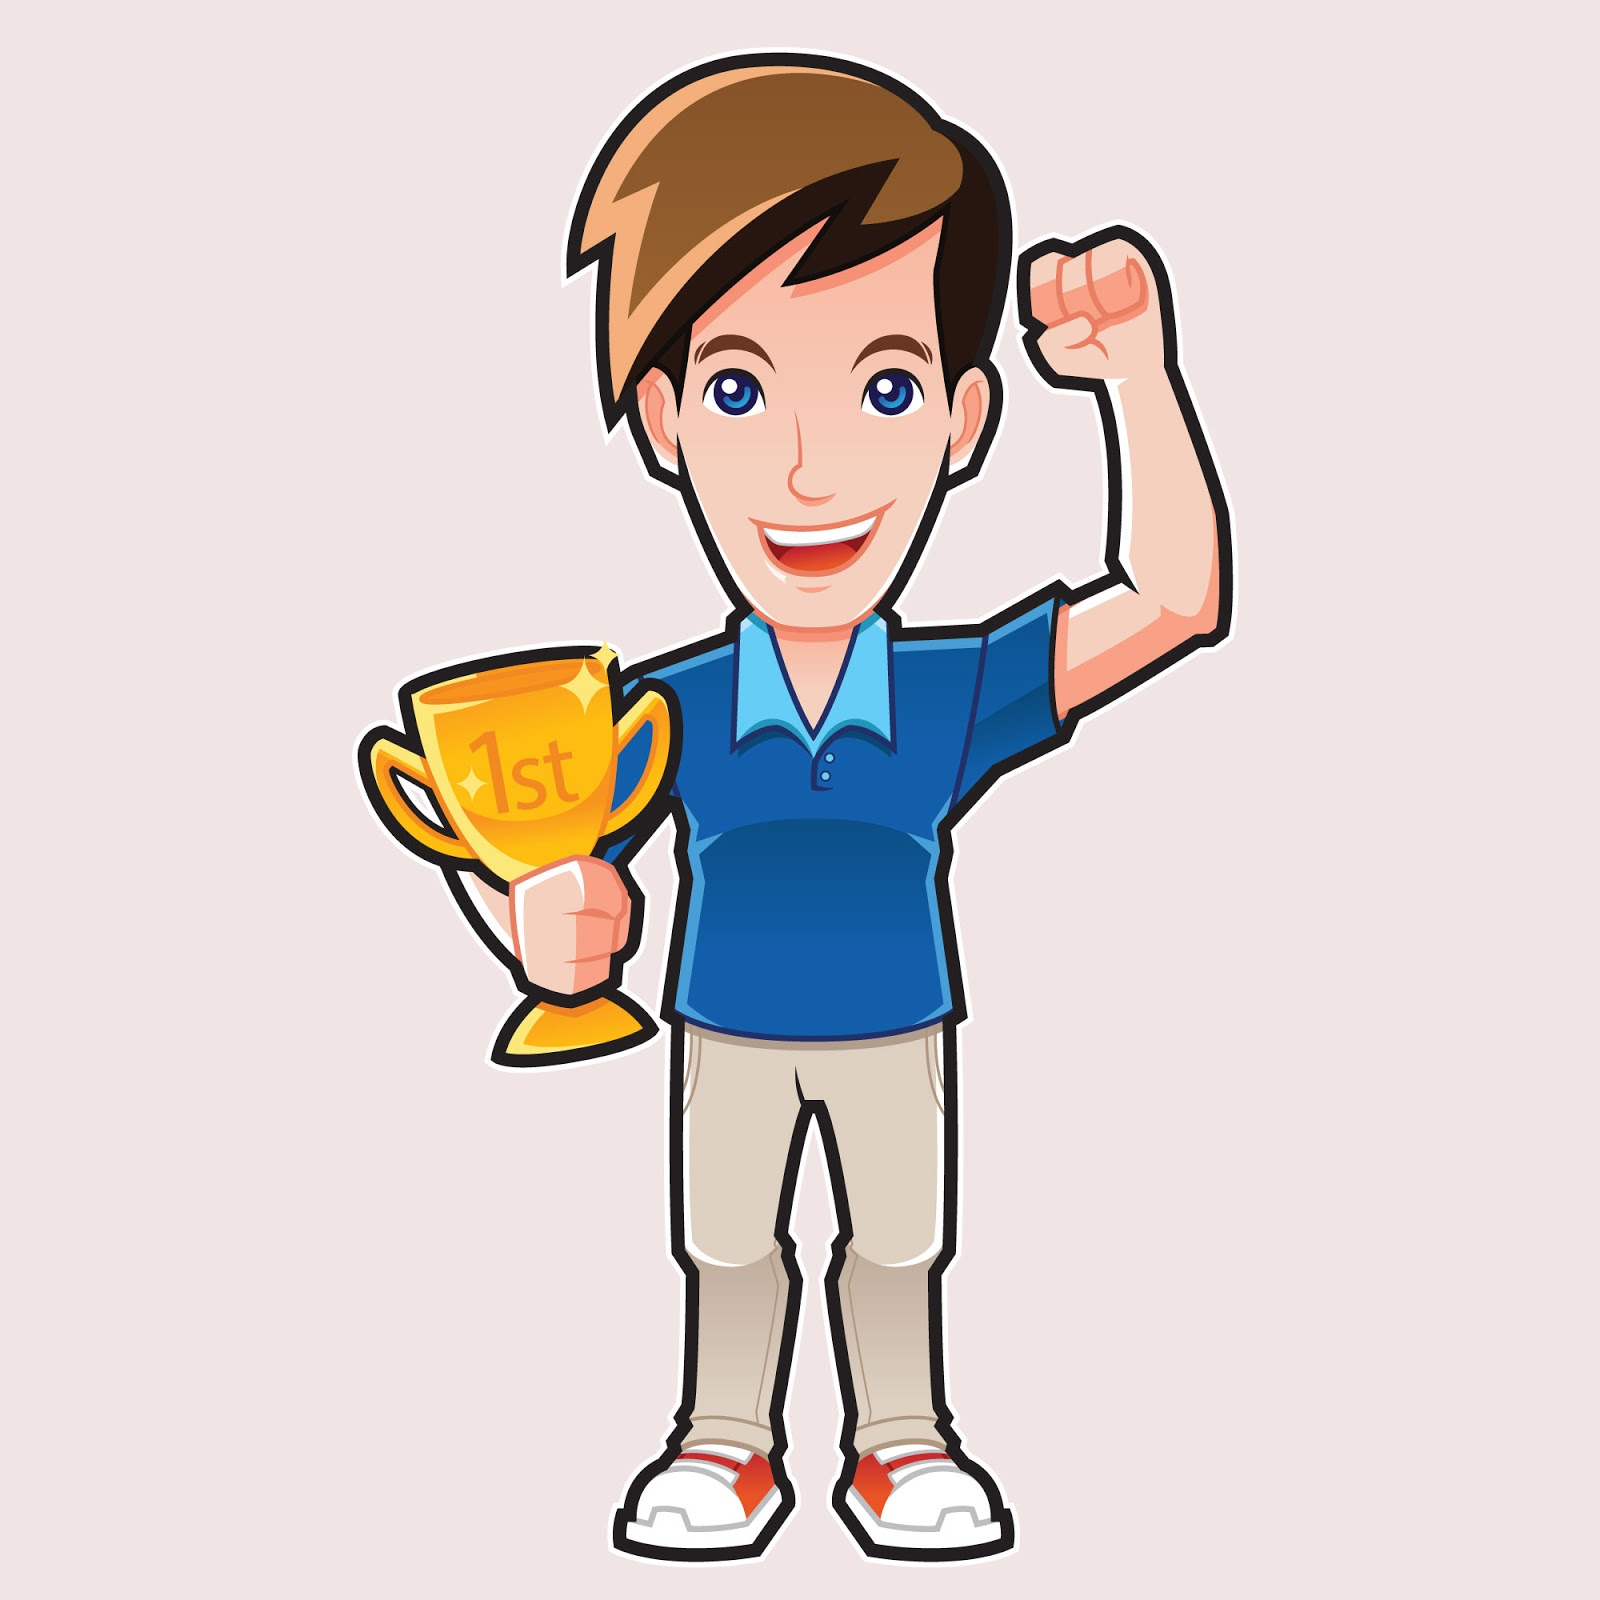 Champion Guy Free Download Vector CDR, AI, EPS and PNG Formats